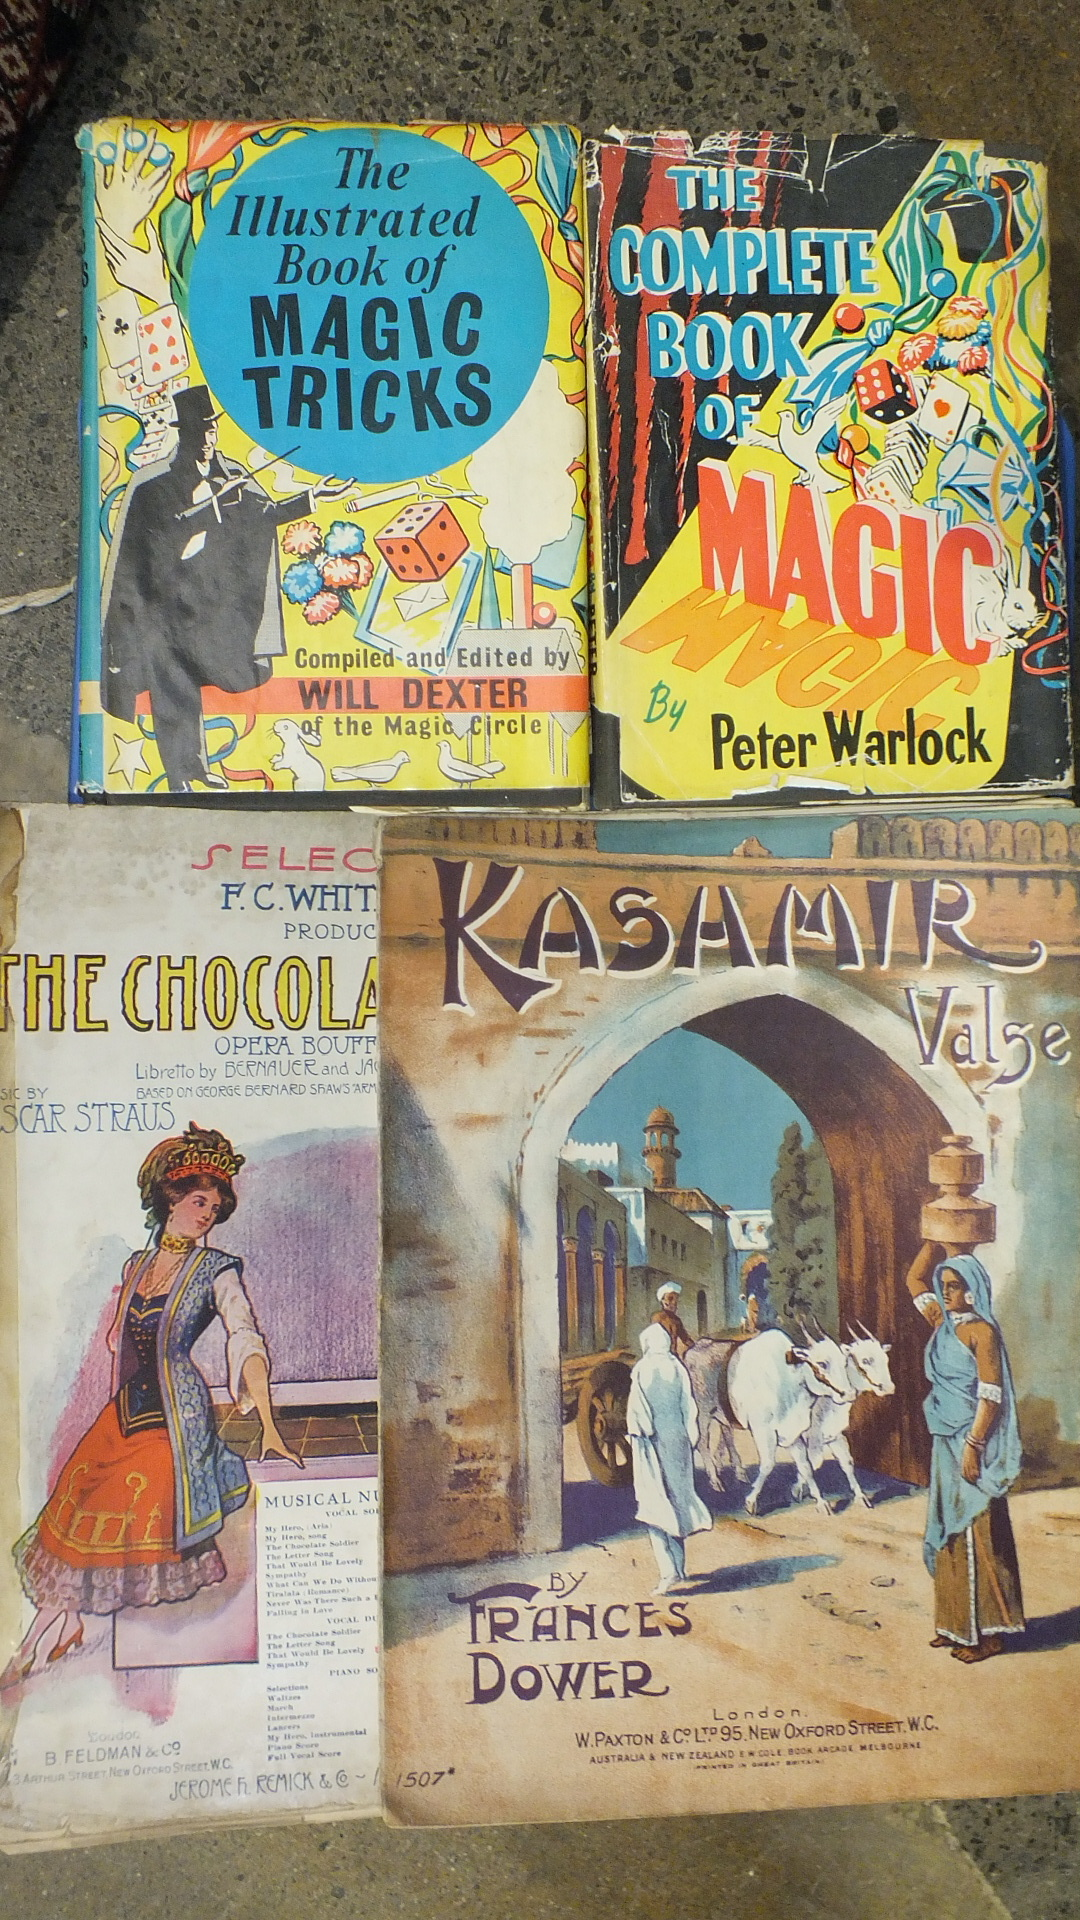 Dexter (Will), The Illustrated Book of Magic Tricks, dwrp, cl, 1957, another, similar and a quantity